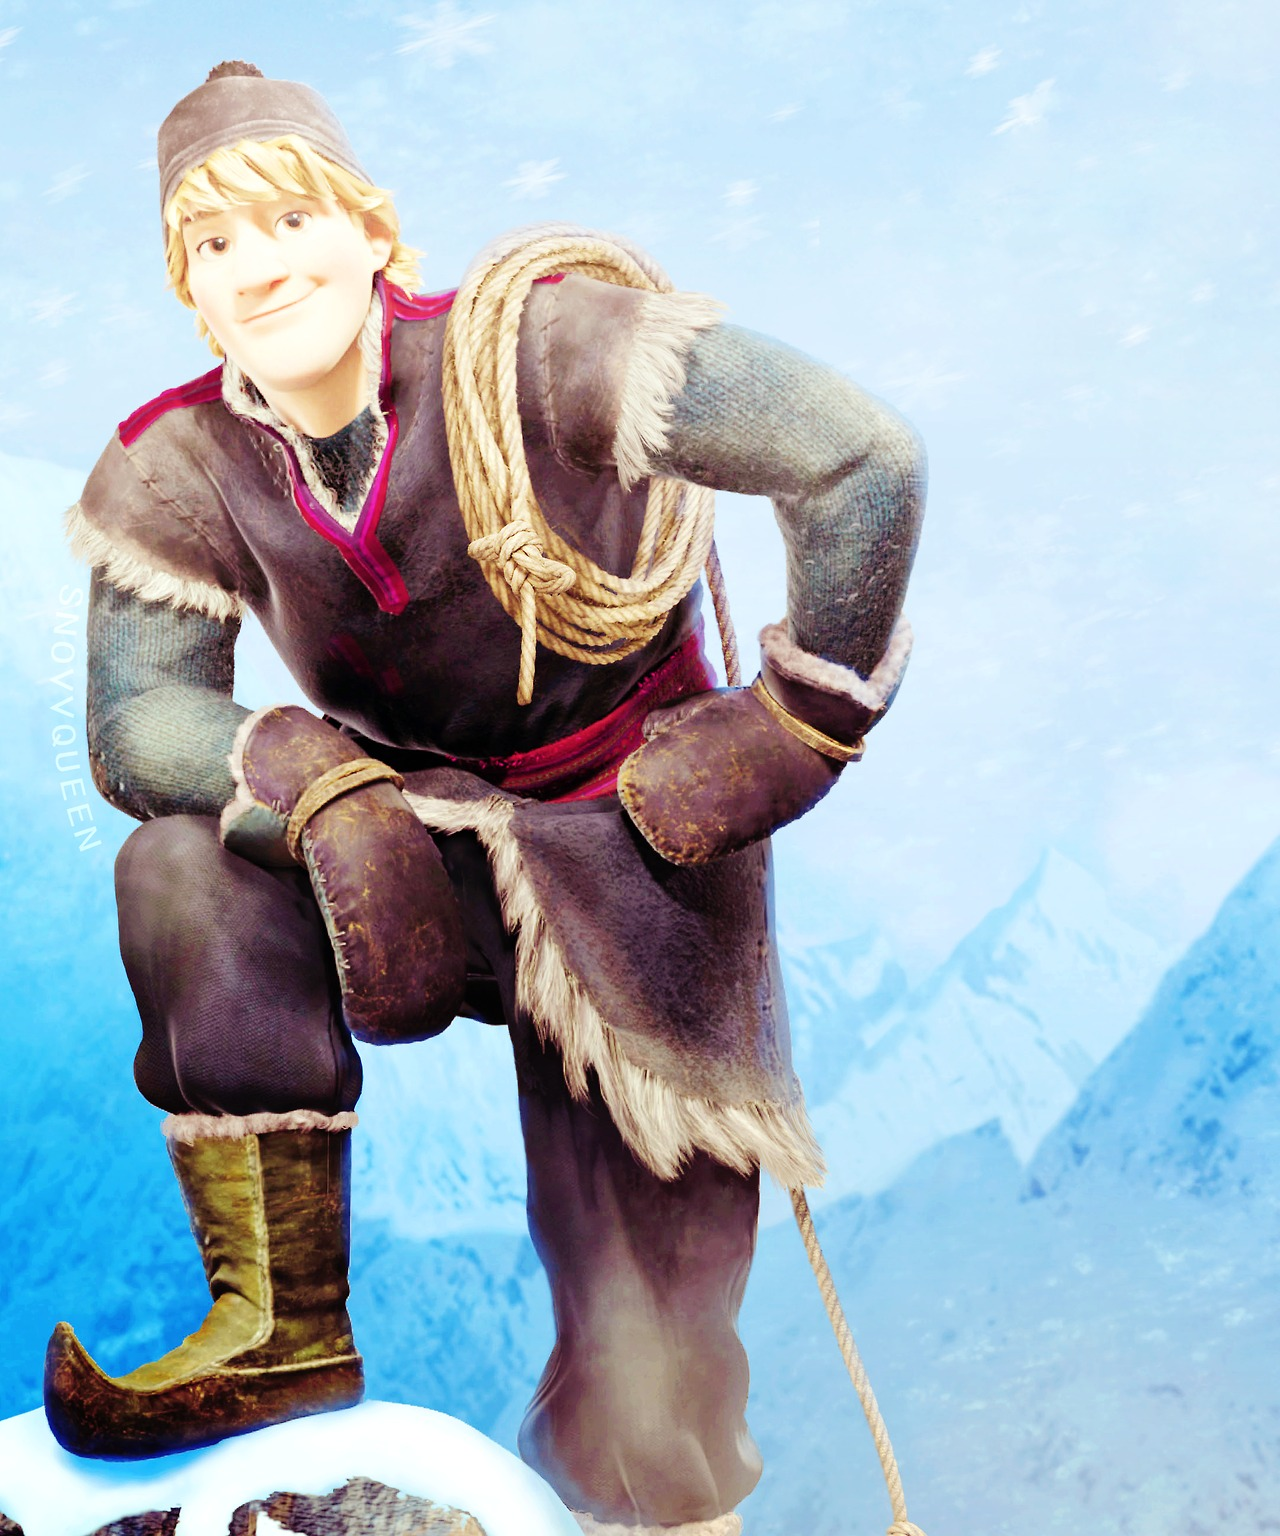 kristoff frozen photo - photo #11